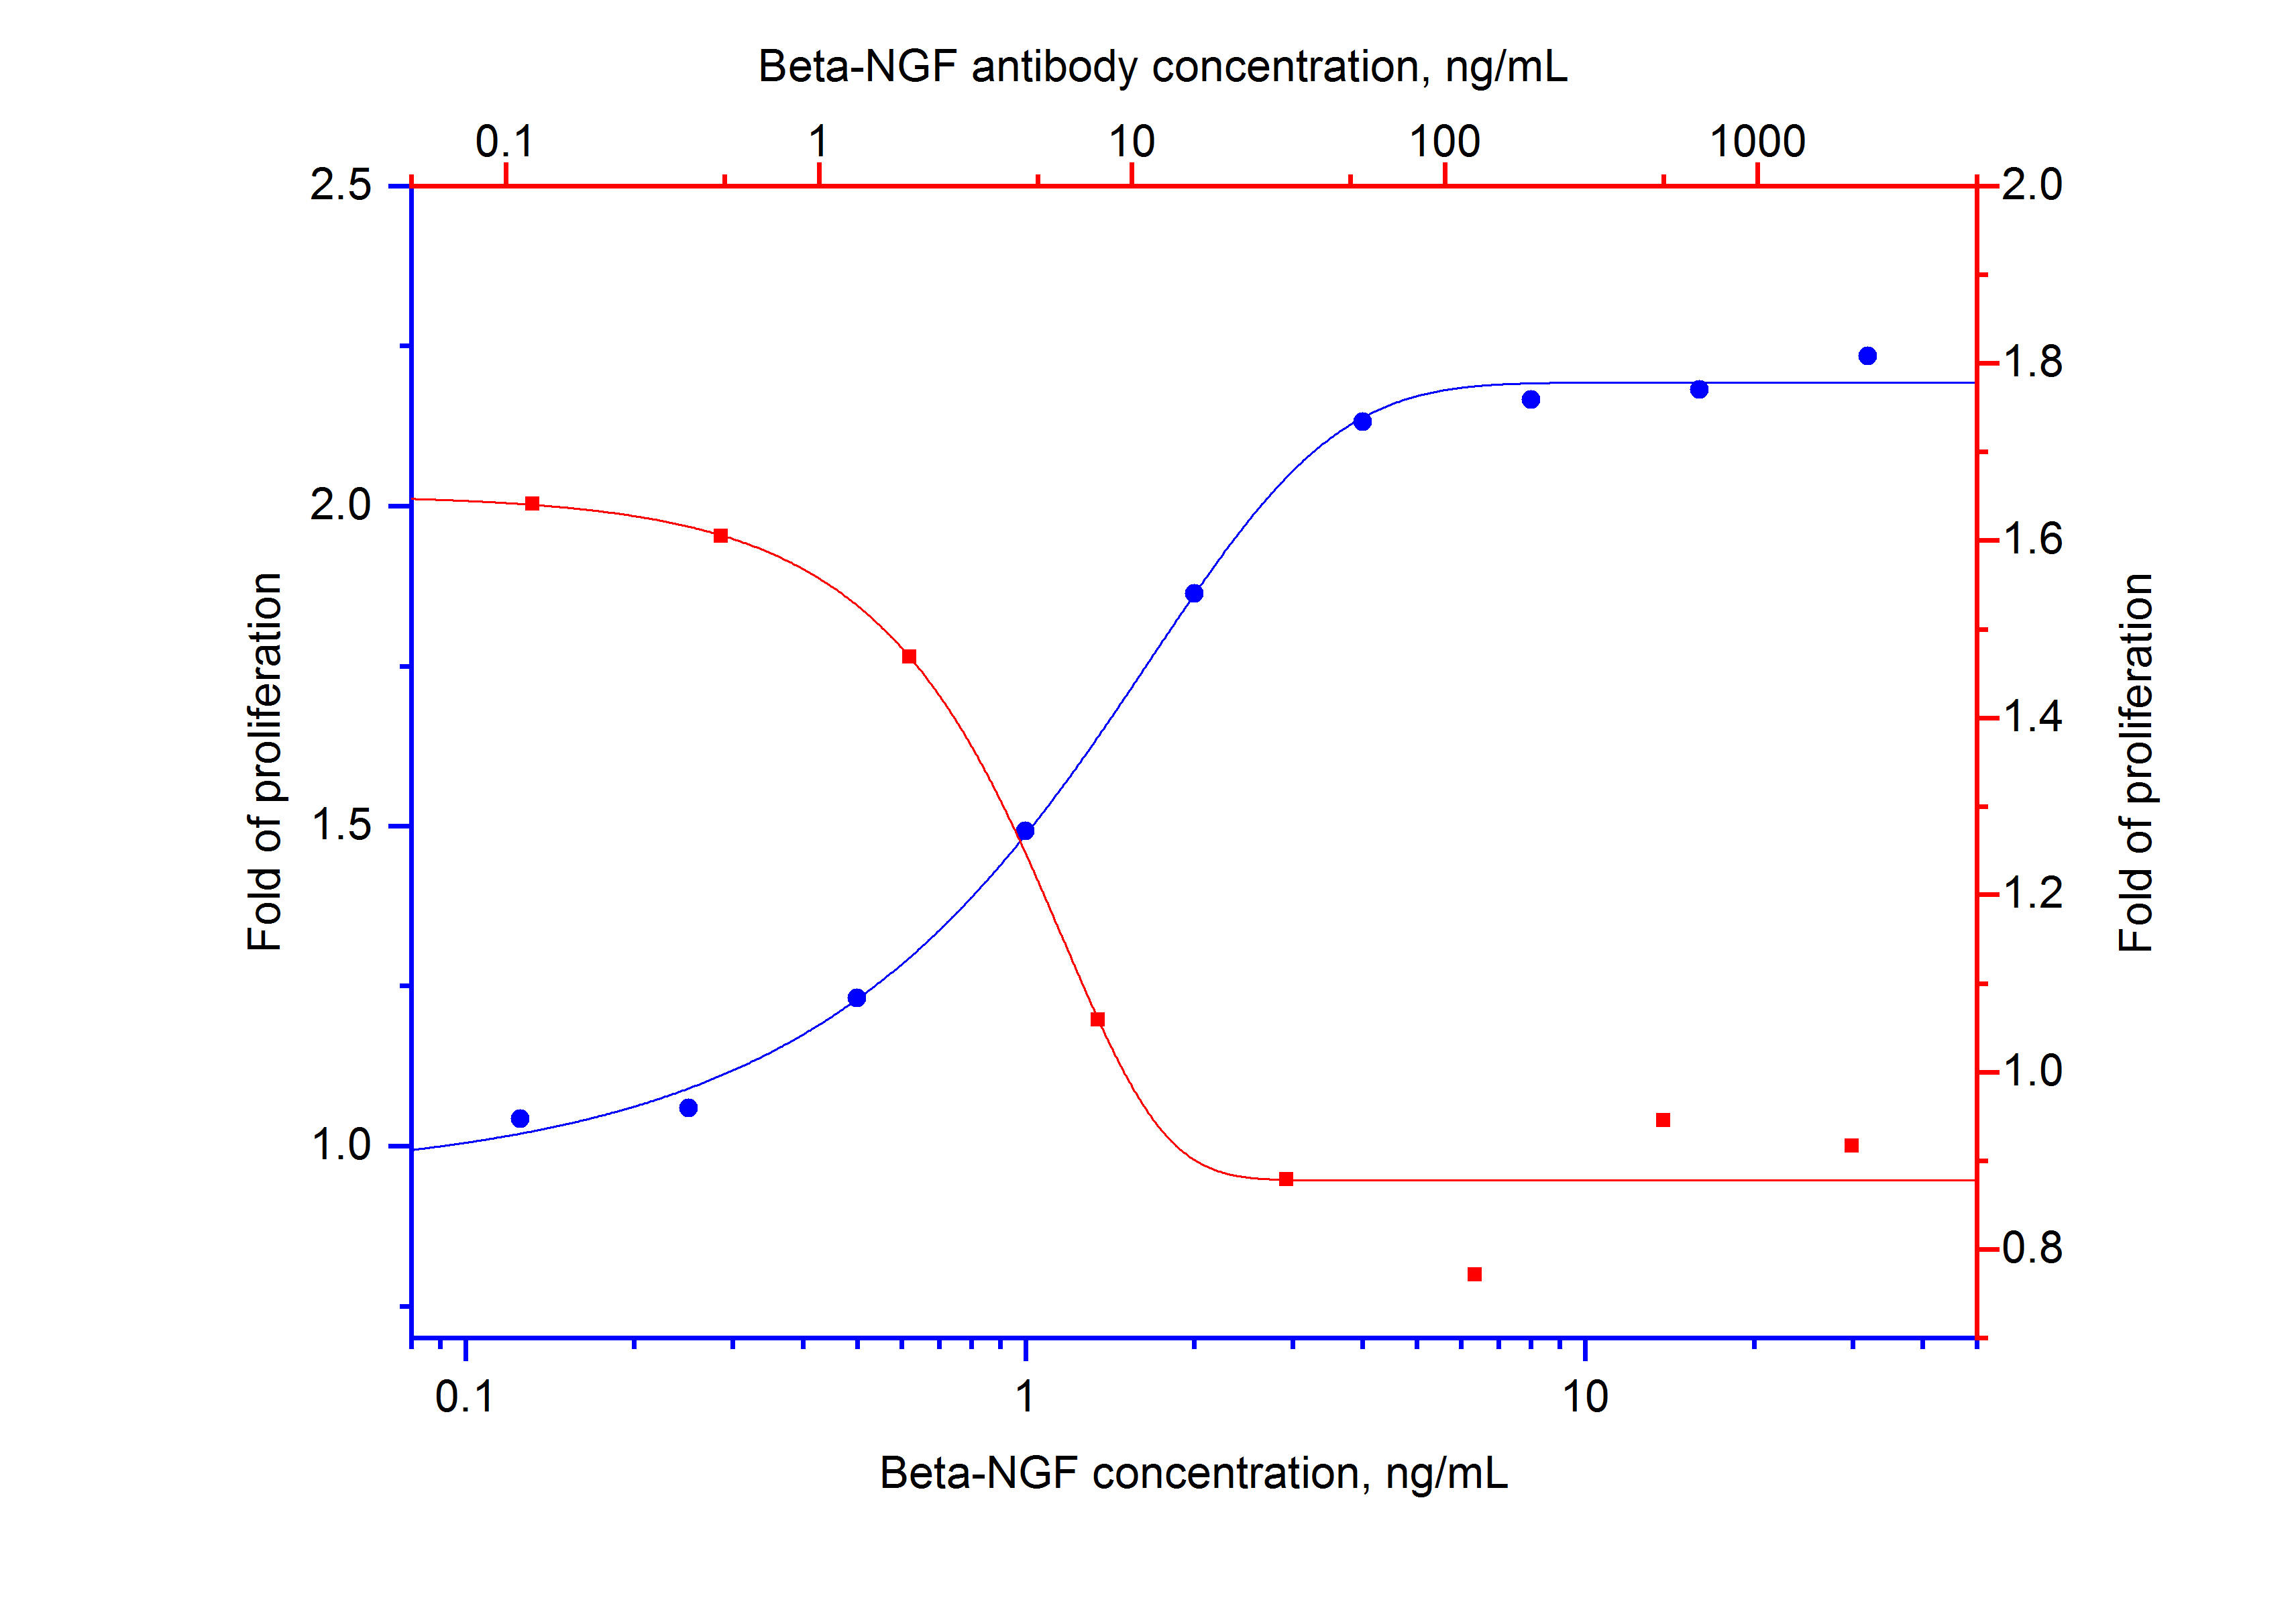 Recombinant human beta-NGF (Cat.NO. HZ-1222) stimulates proliferation of TF-1 cell line (human erythroleukemic cell line) in a dose-dependent manner (blue curve, refer to bottom X-left Y).  The activity of human beta-NGF (2 ng/mL HZ-1222) is neutralized by mouse anti-human beta-NGF monoclonal antibody 69009-1-Ig at serial dose (red curve, refer to top X-right Y). The ND50 is typically 4-20 ng/mL